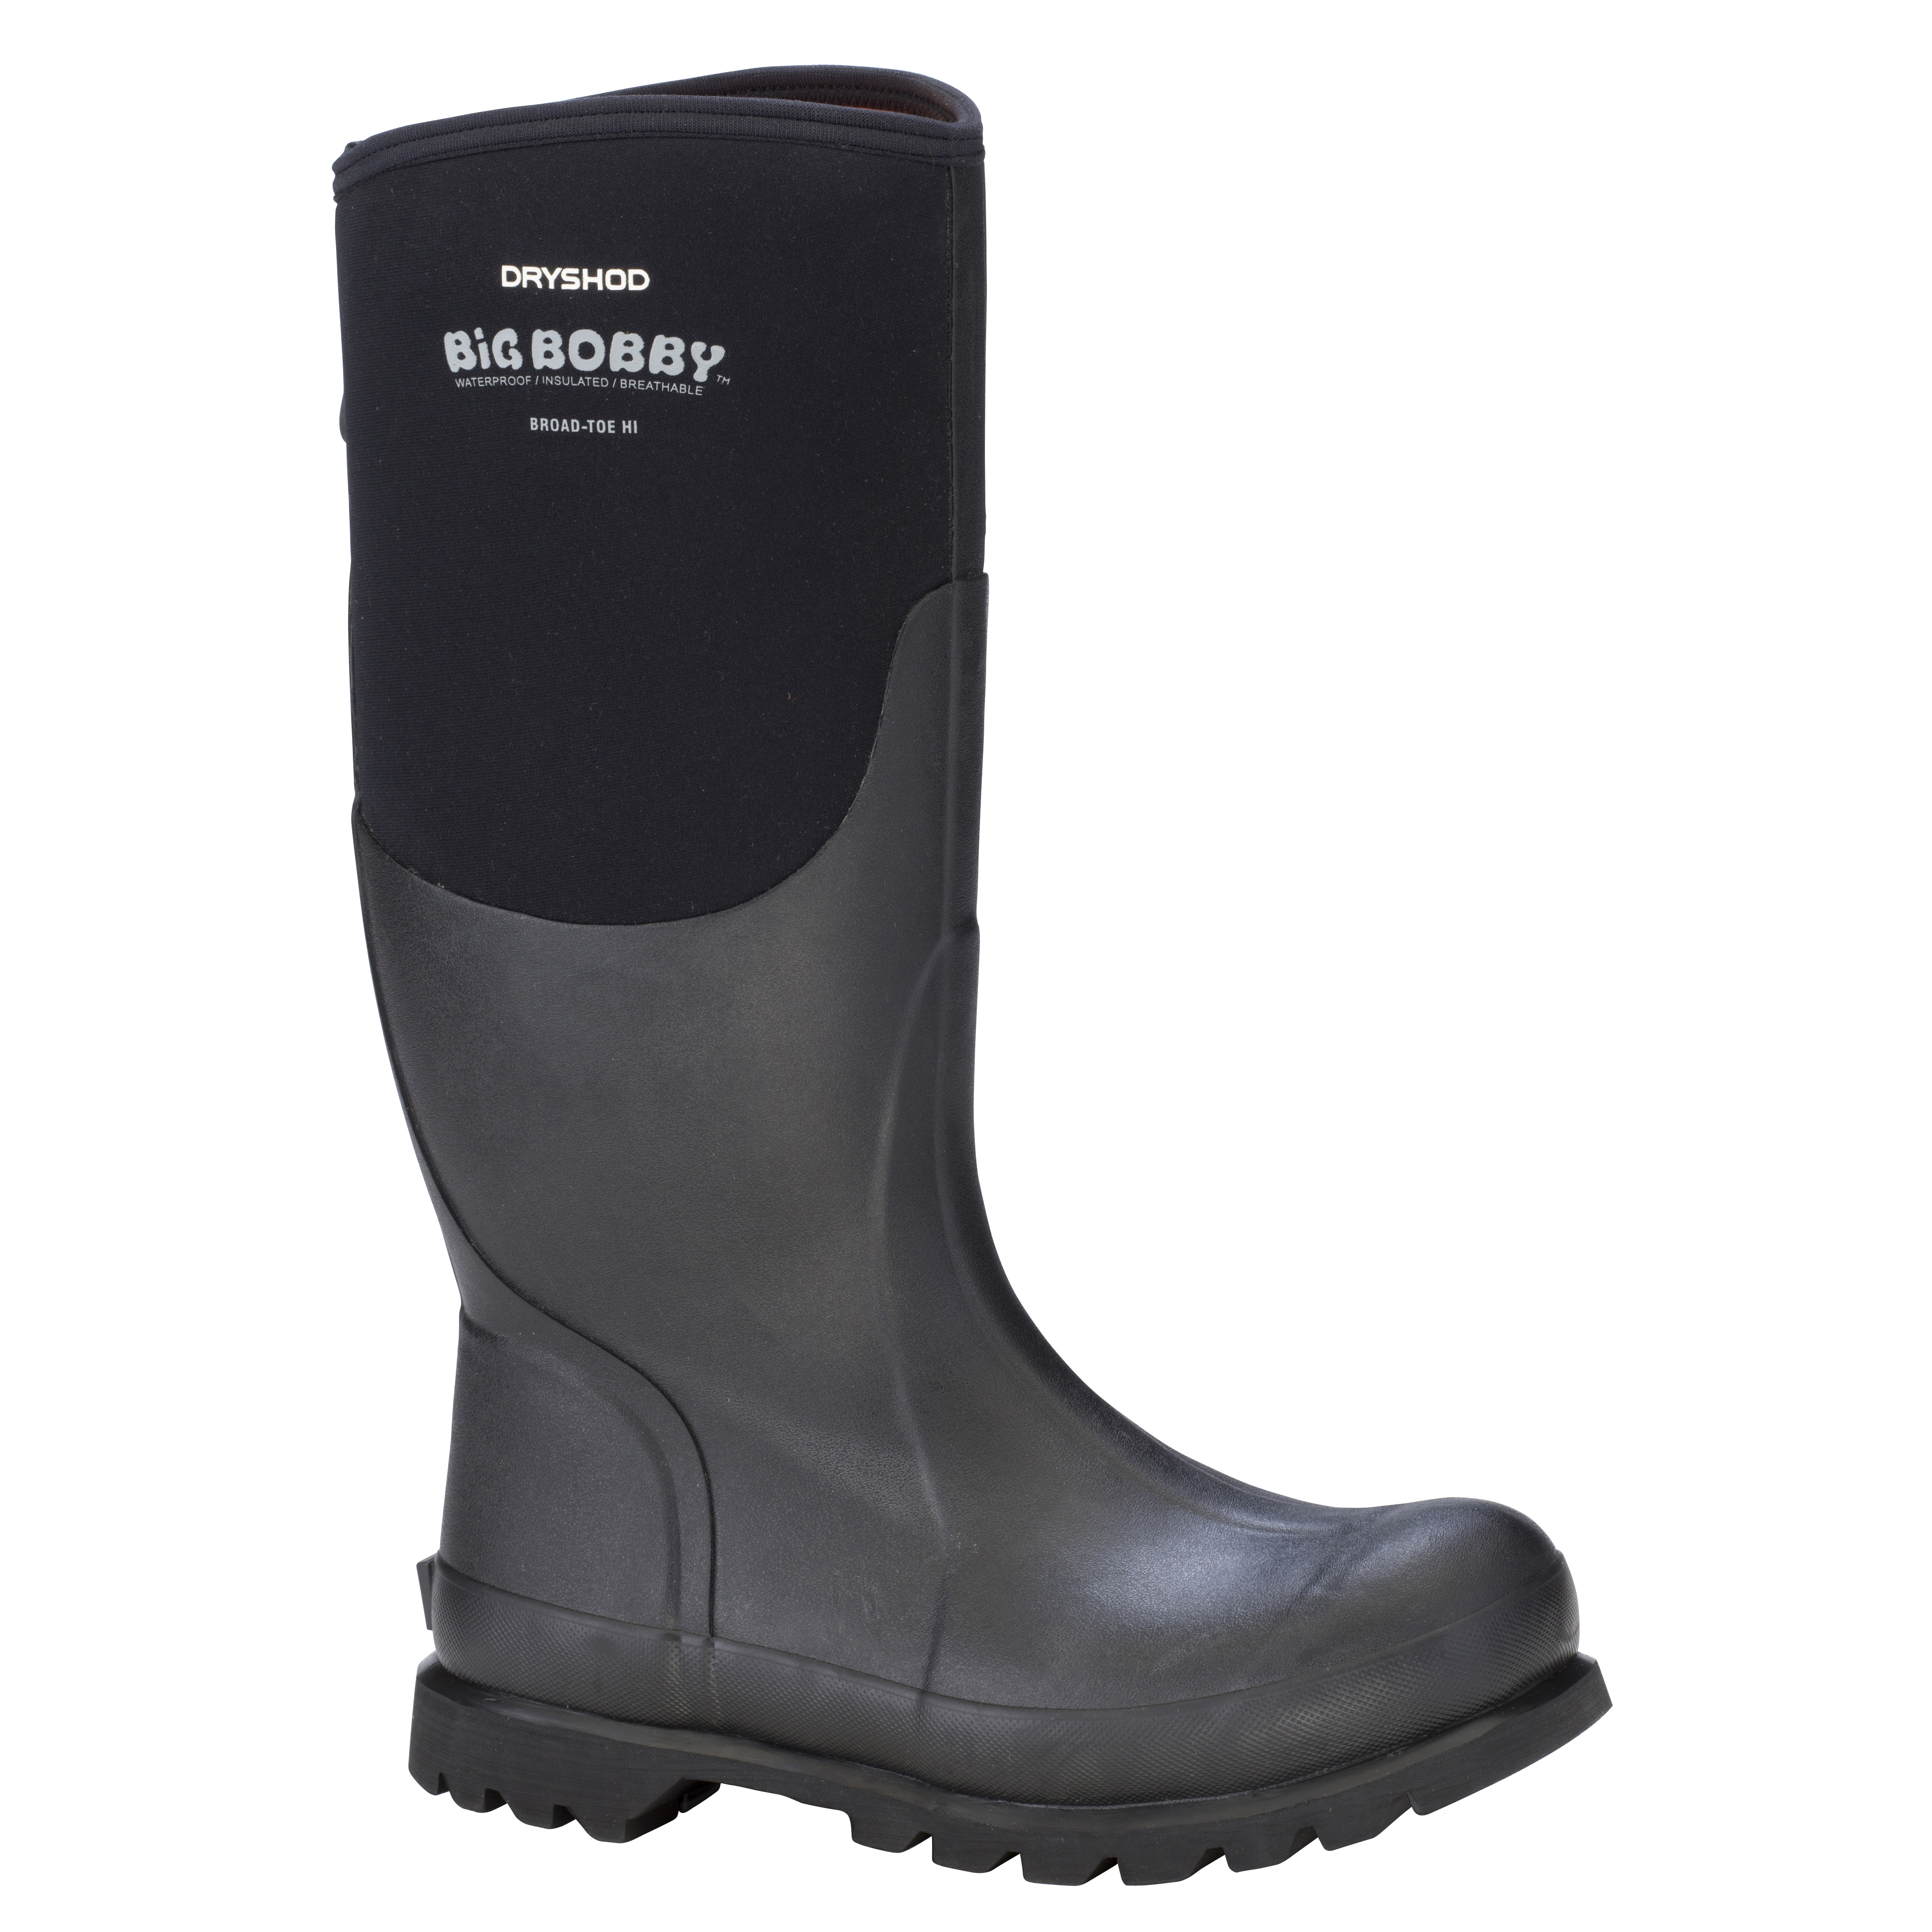 Big Bobby Work Boots #BBB-MH-BK